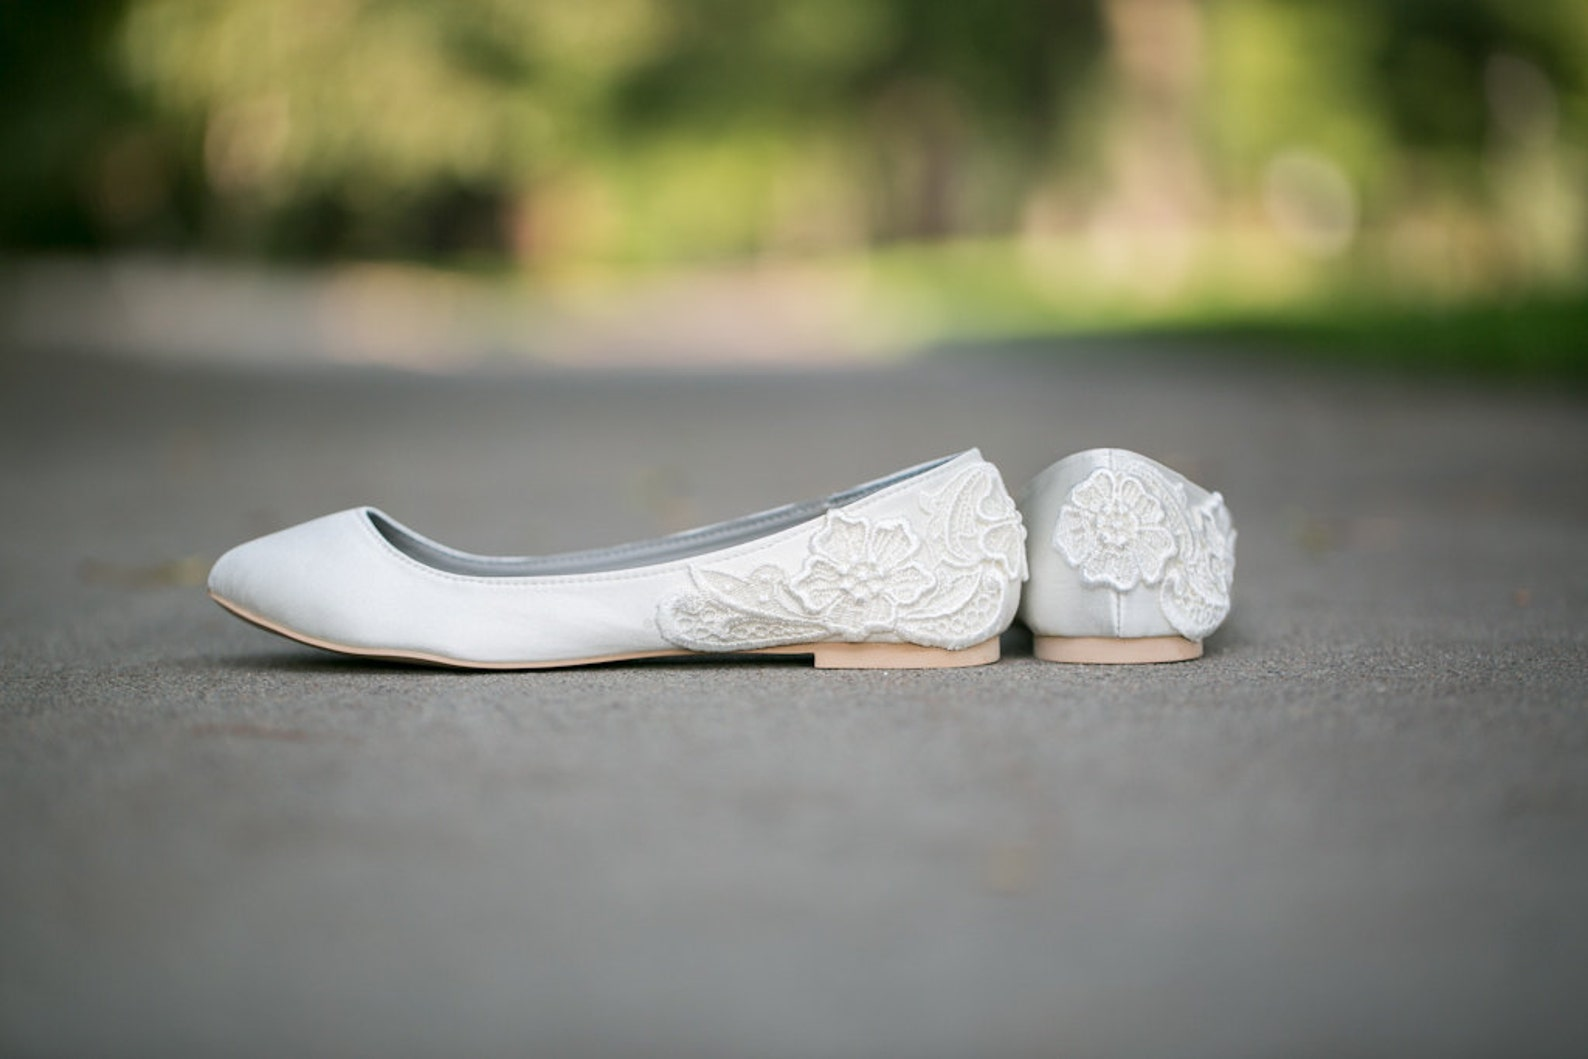 wedding shoes - ivory wedding flats, wedding ballet flats, satin flats, wedding shoe, ivory flats, low wedding bridal shoes with